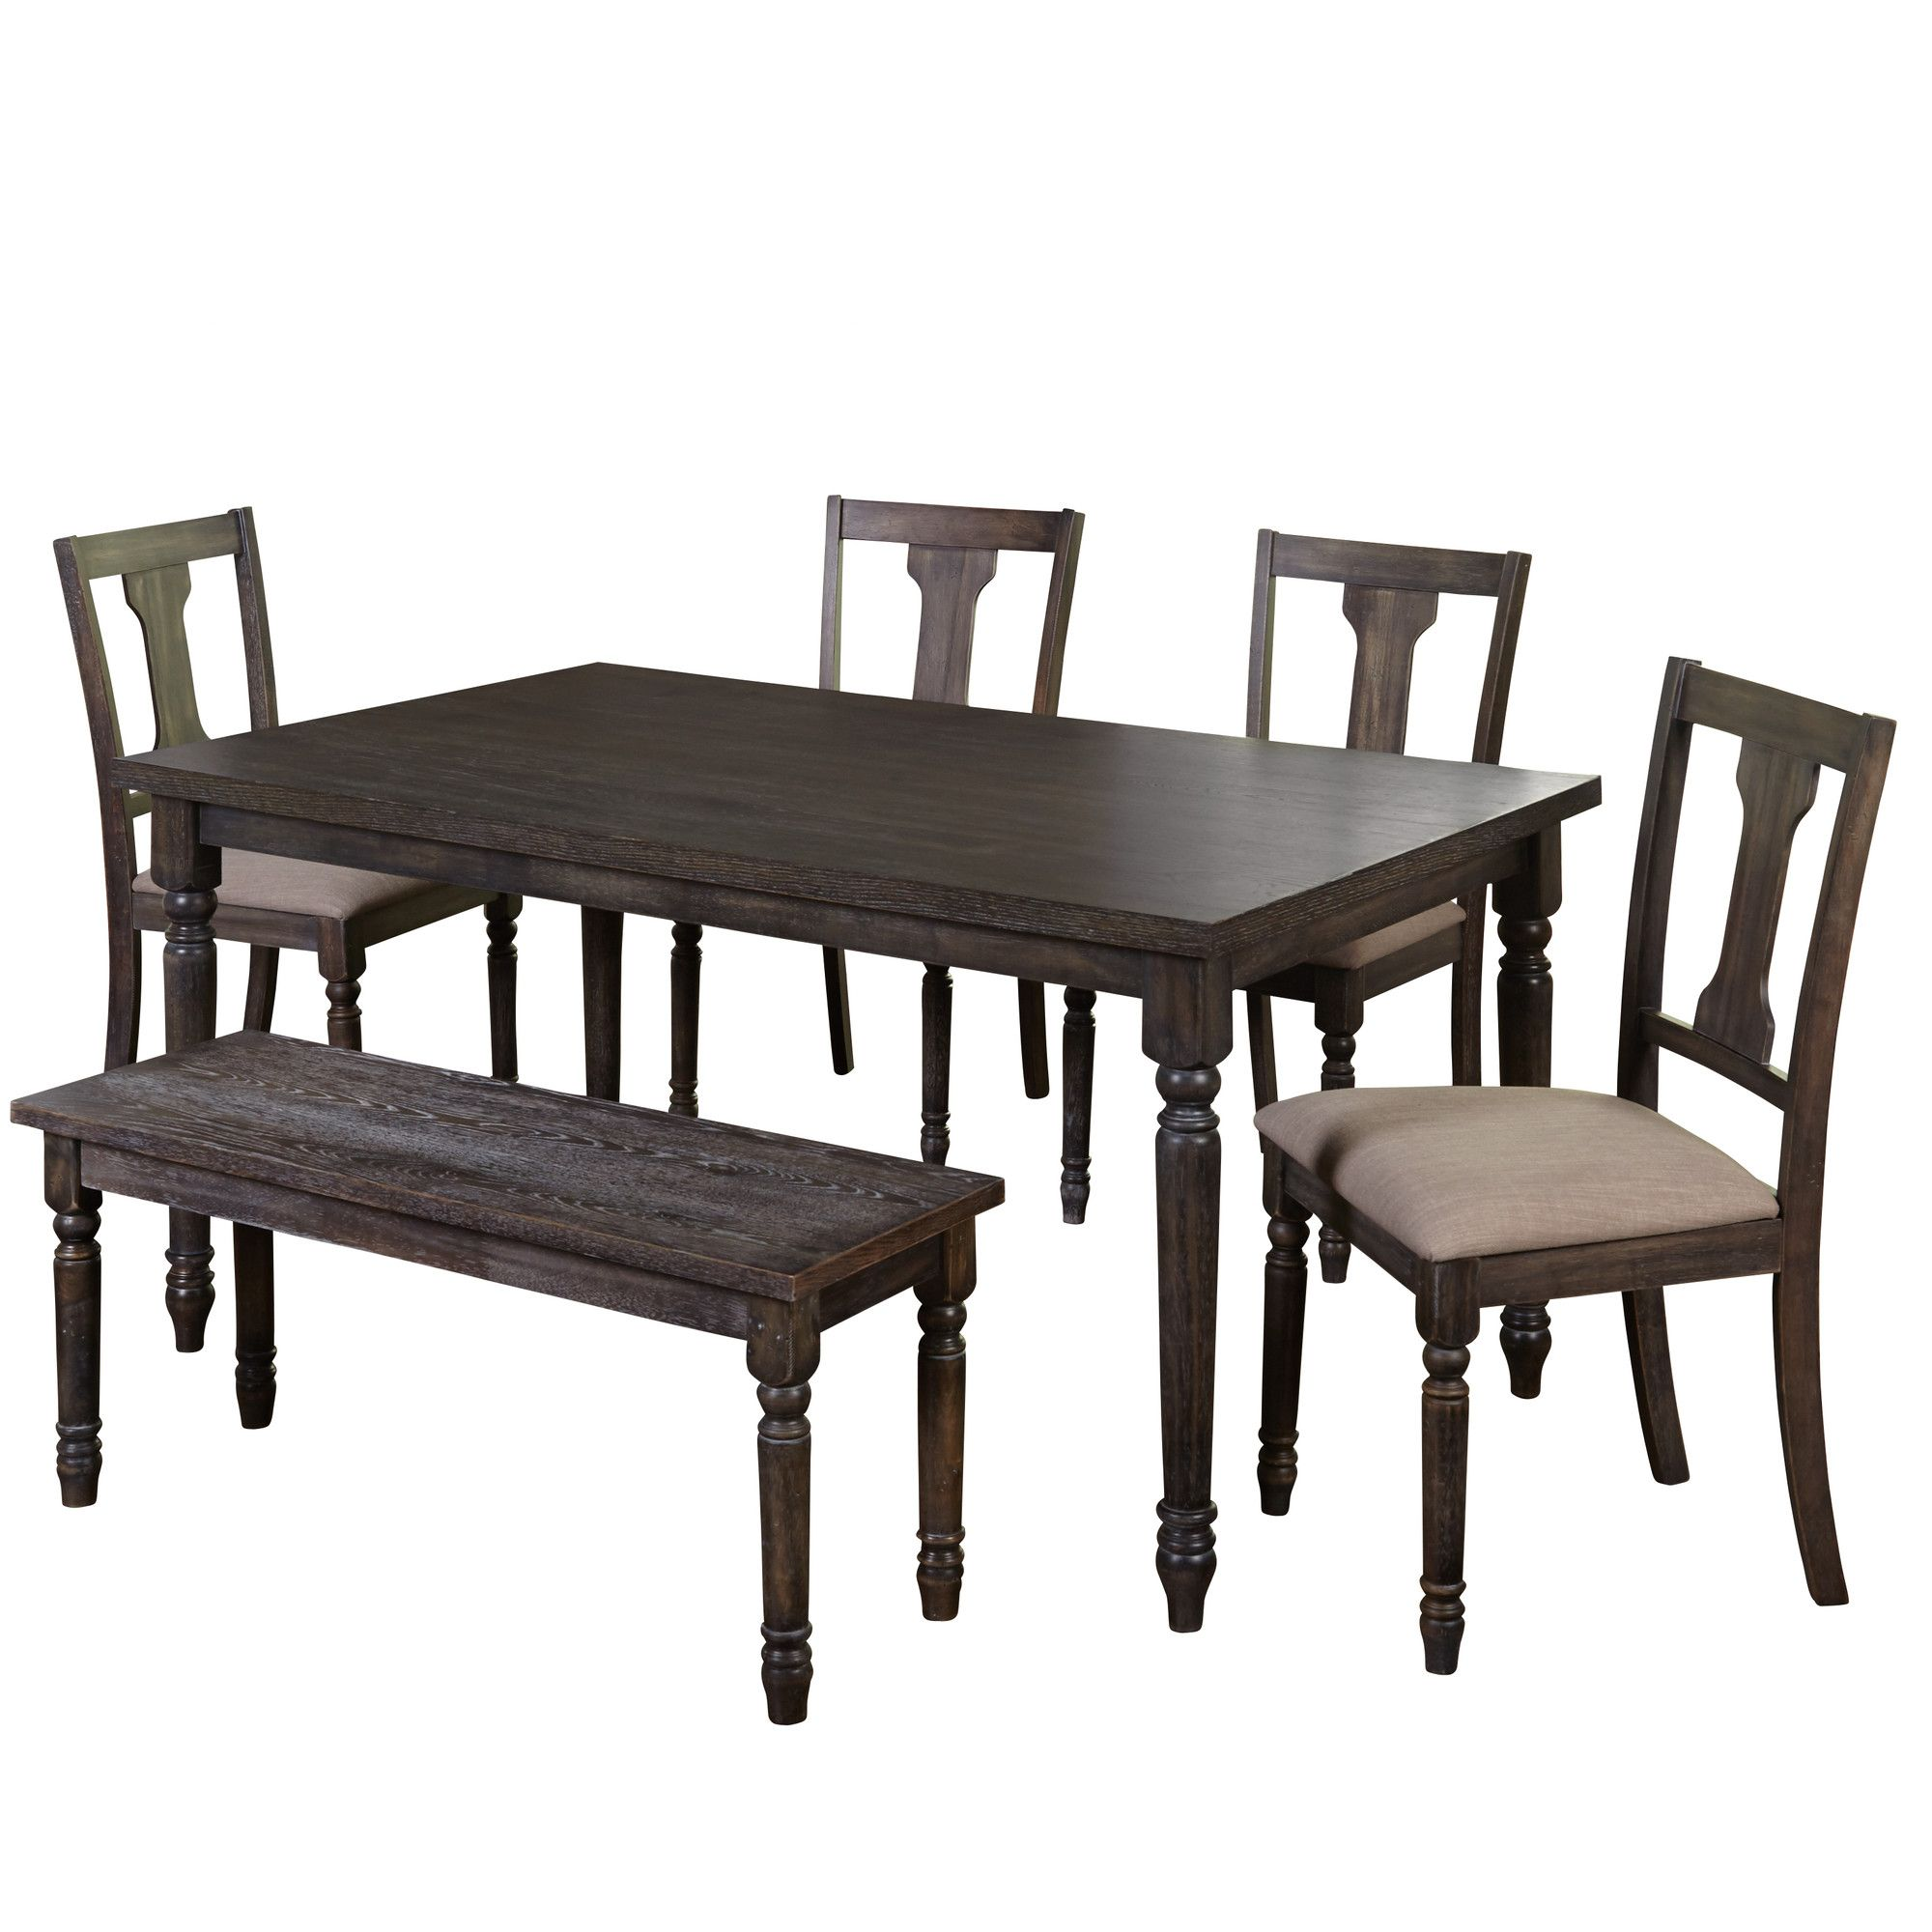 Kitchen bistro set  Ines  Piece Dining Set  Products  Pinterest  Products